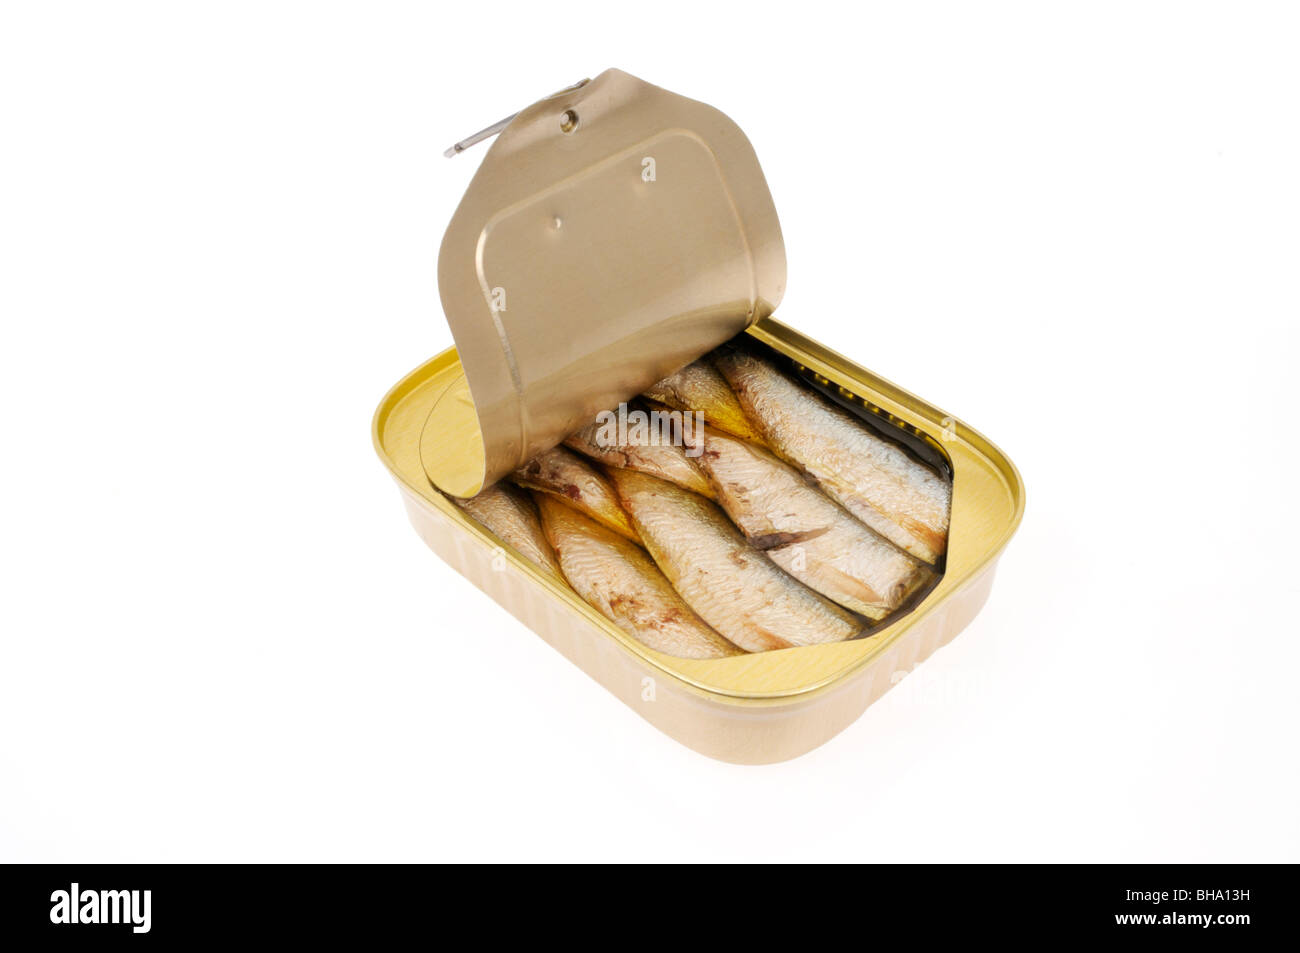 An open pull tab tin of sardines packed in oil on white background, cut out. - Stock Image